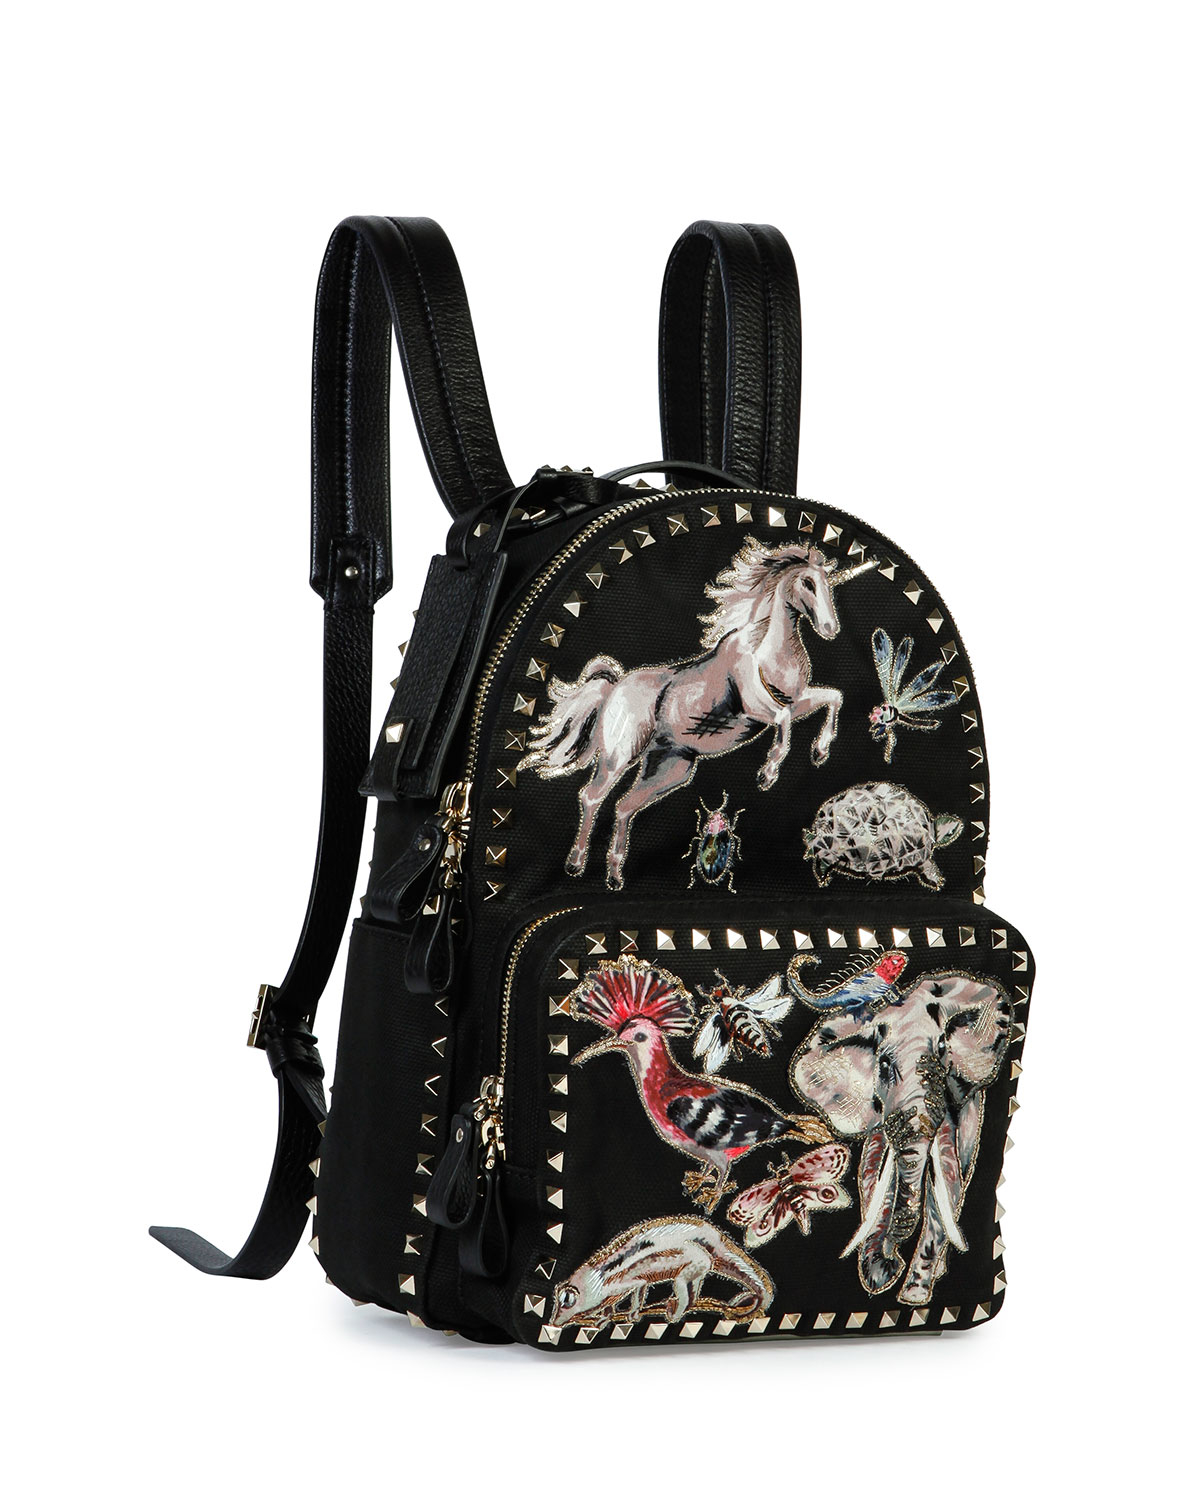 Finishline Sale Online Valentino Embroidered Backpack Pick A Best Clearance New New Lower Prices oKnnk0